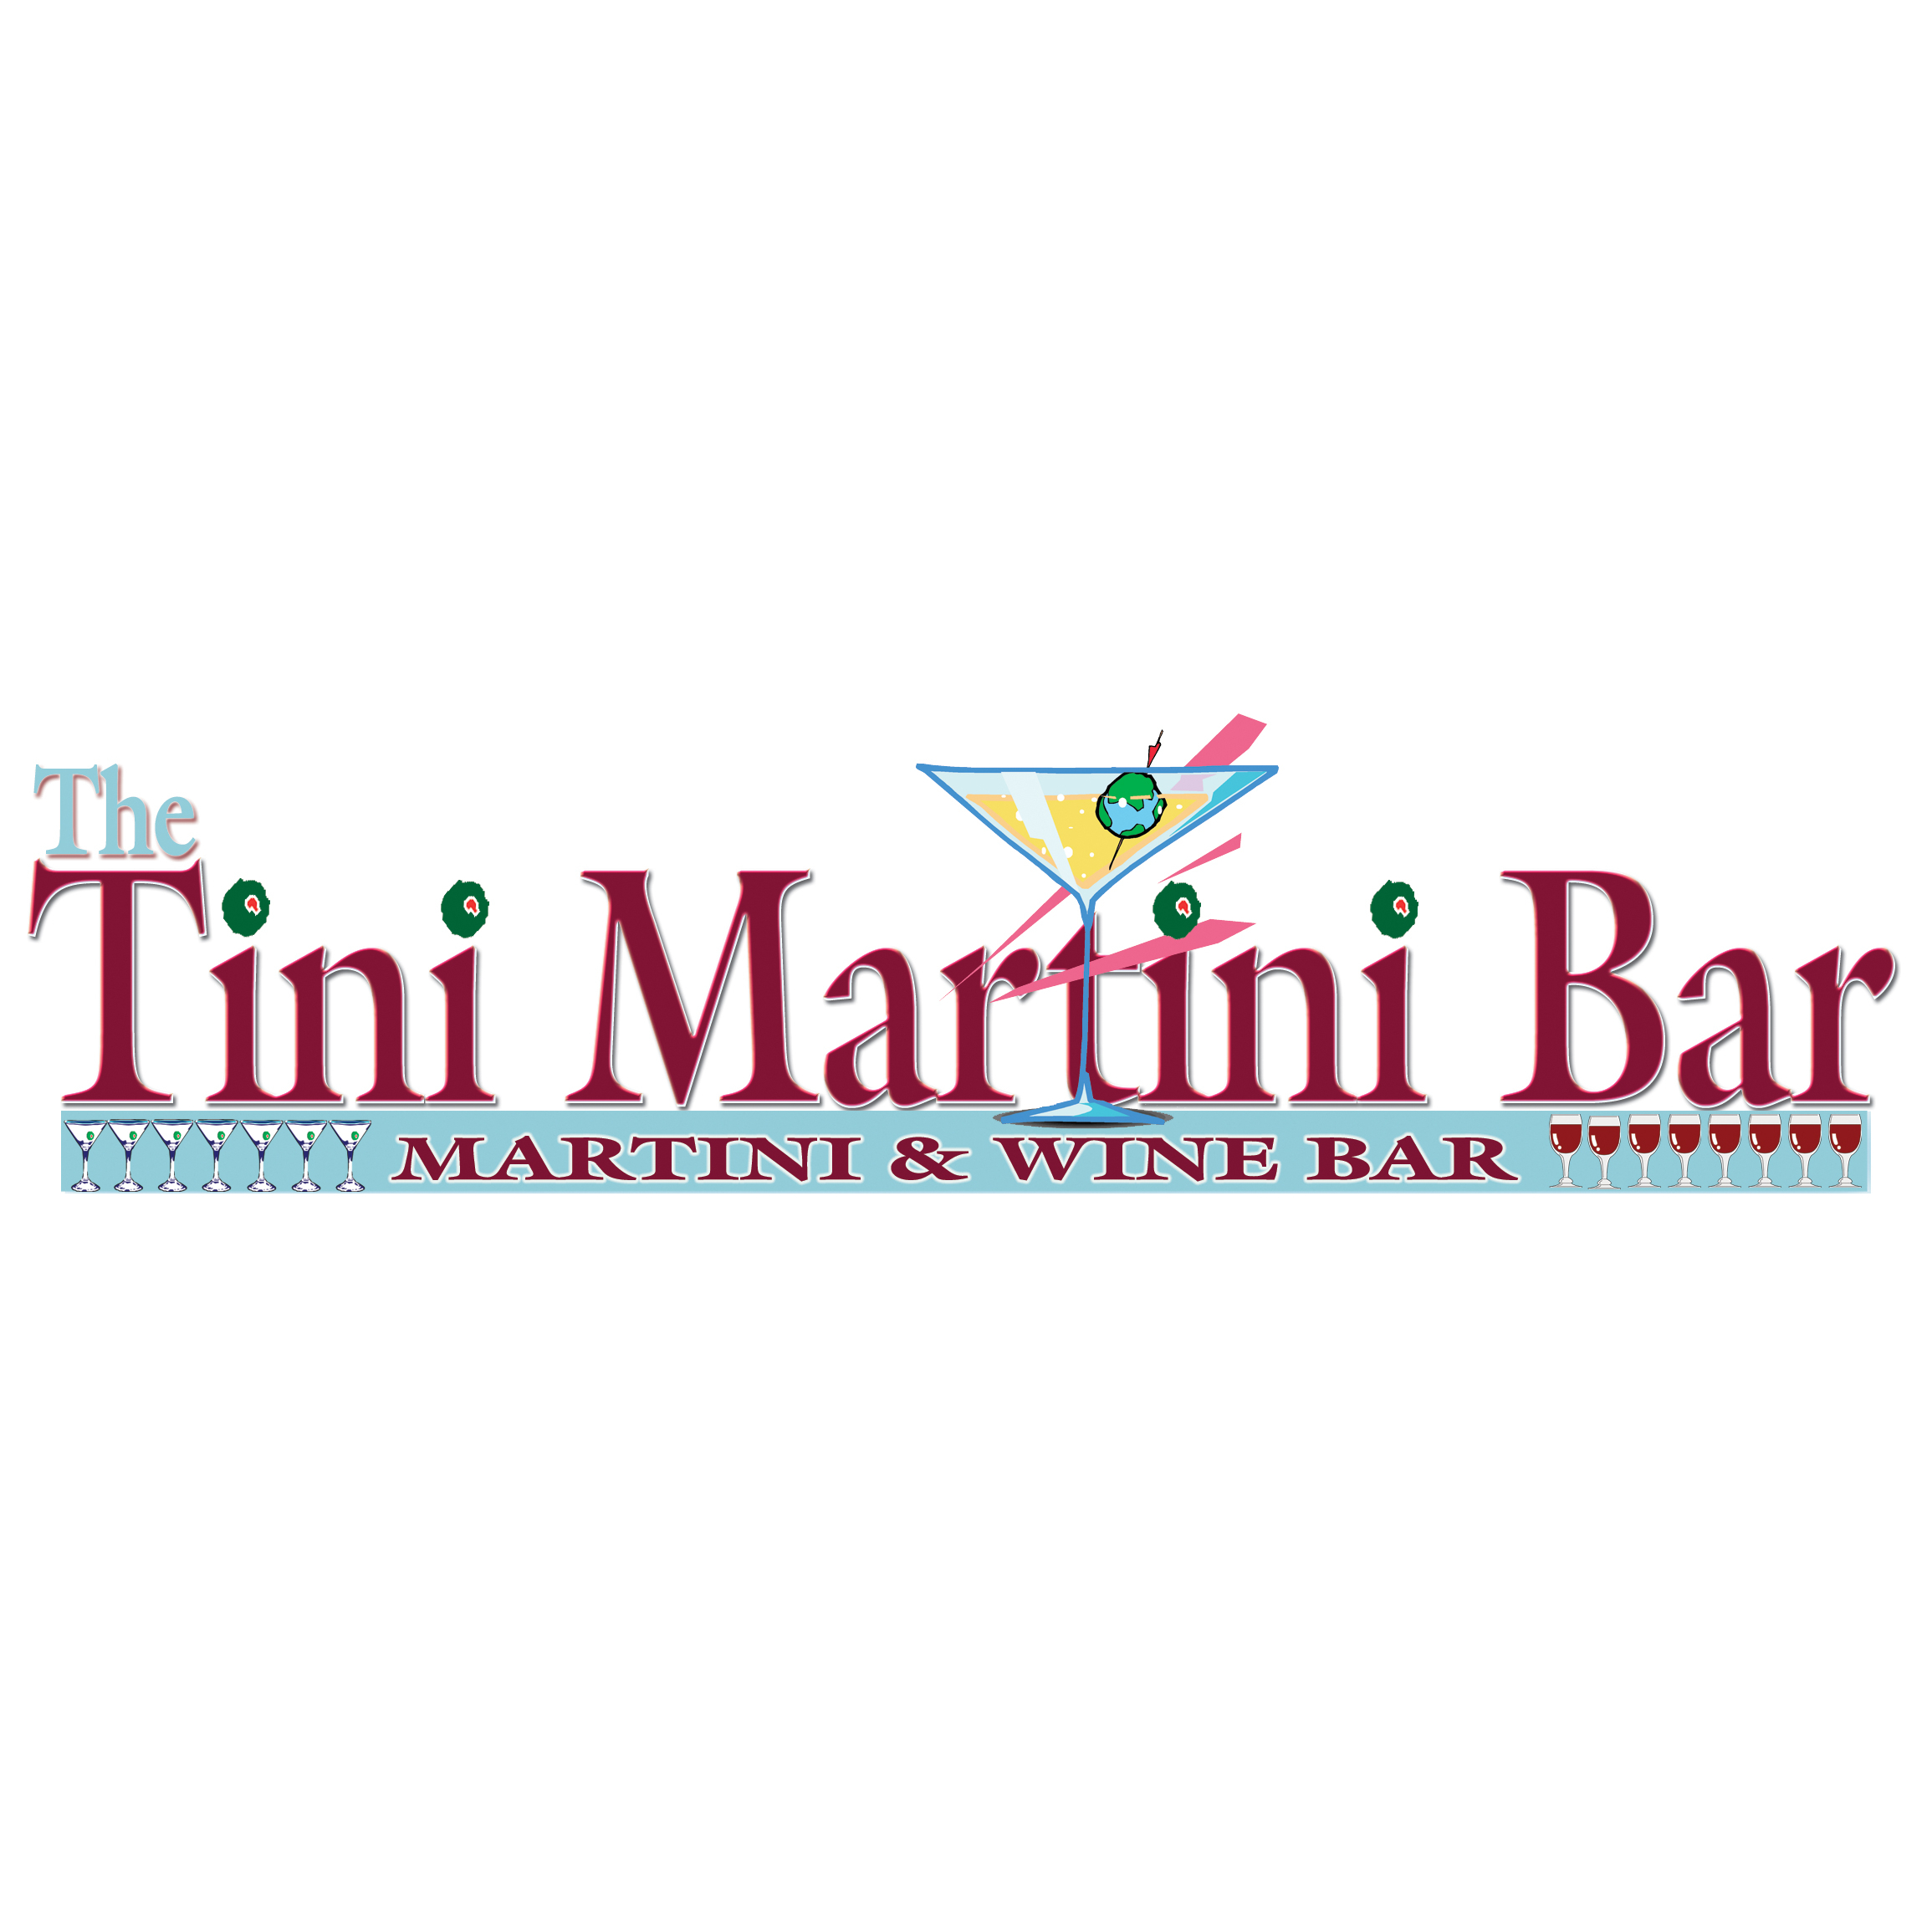 The Tini Martini Bar